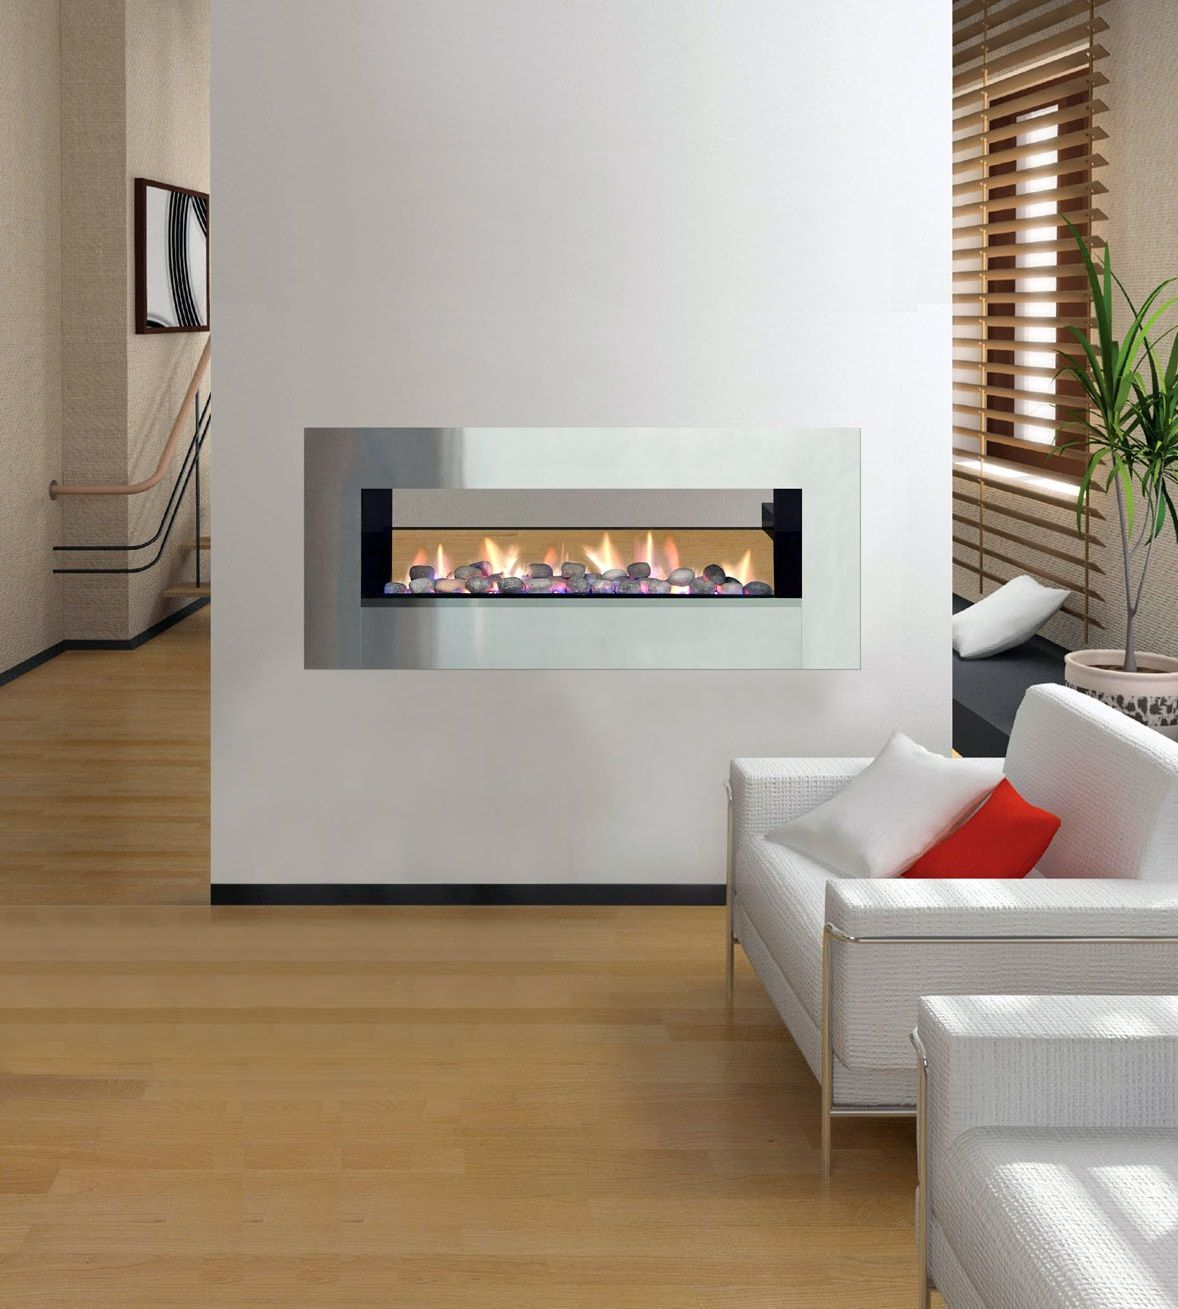 Pin on Open gas fireplaces